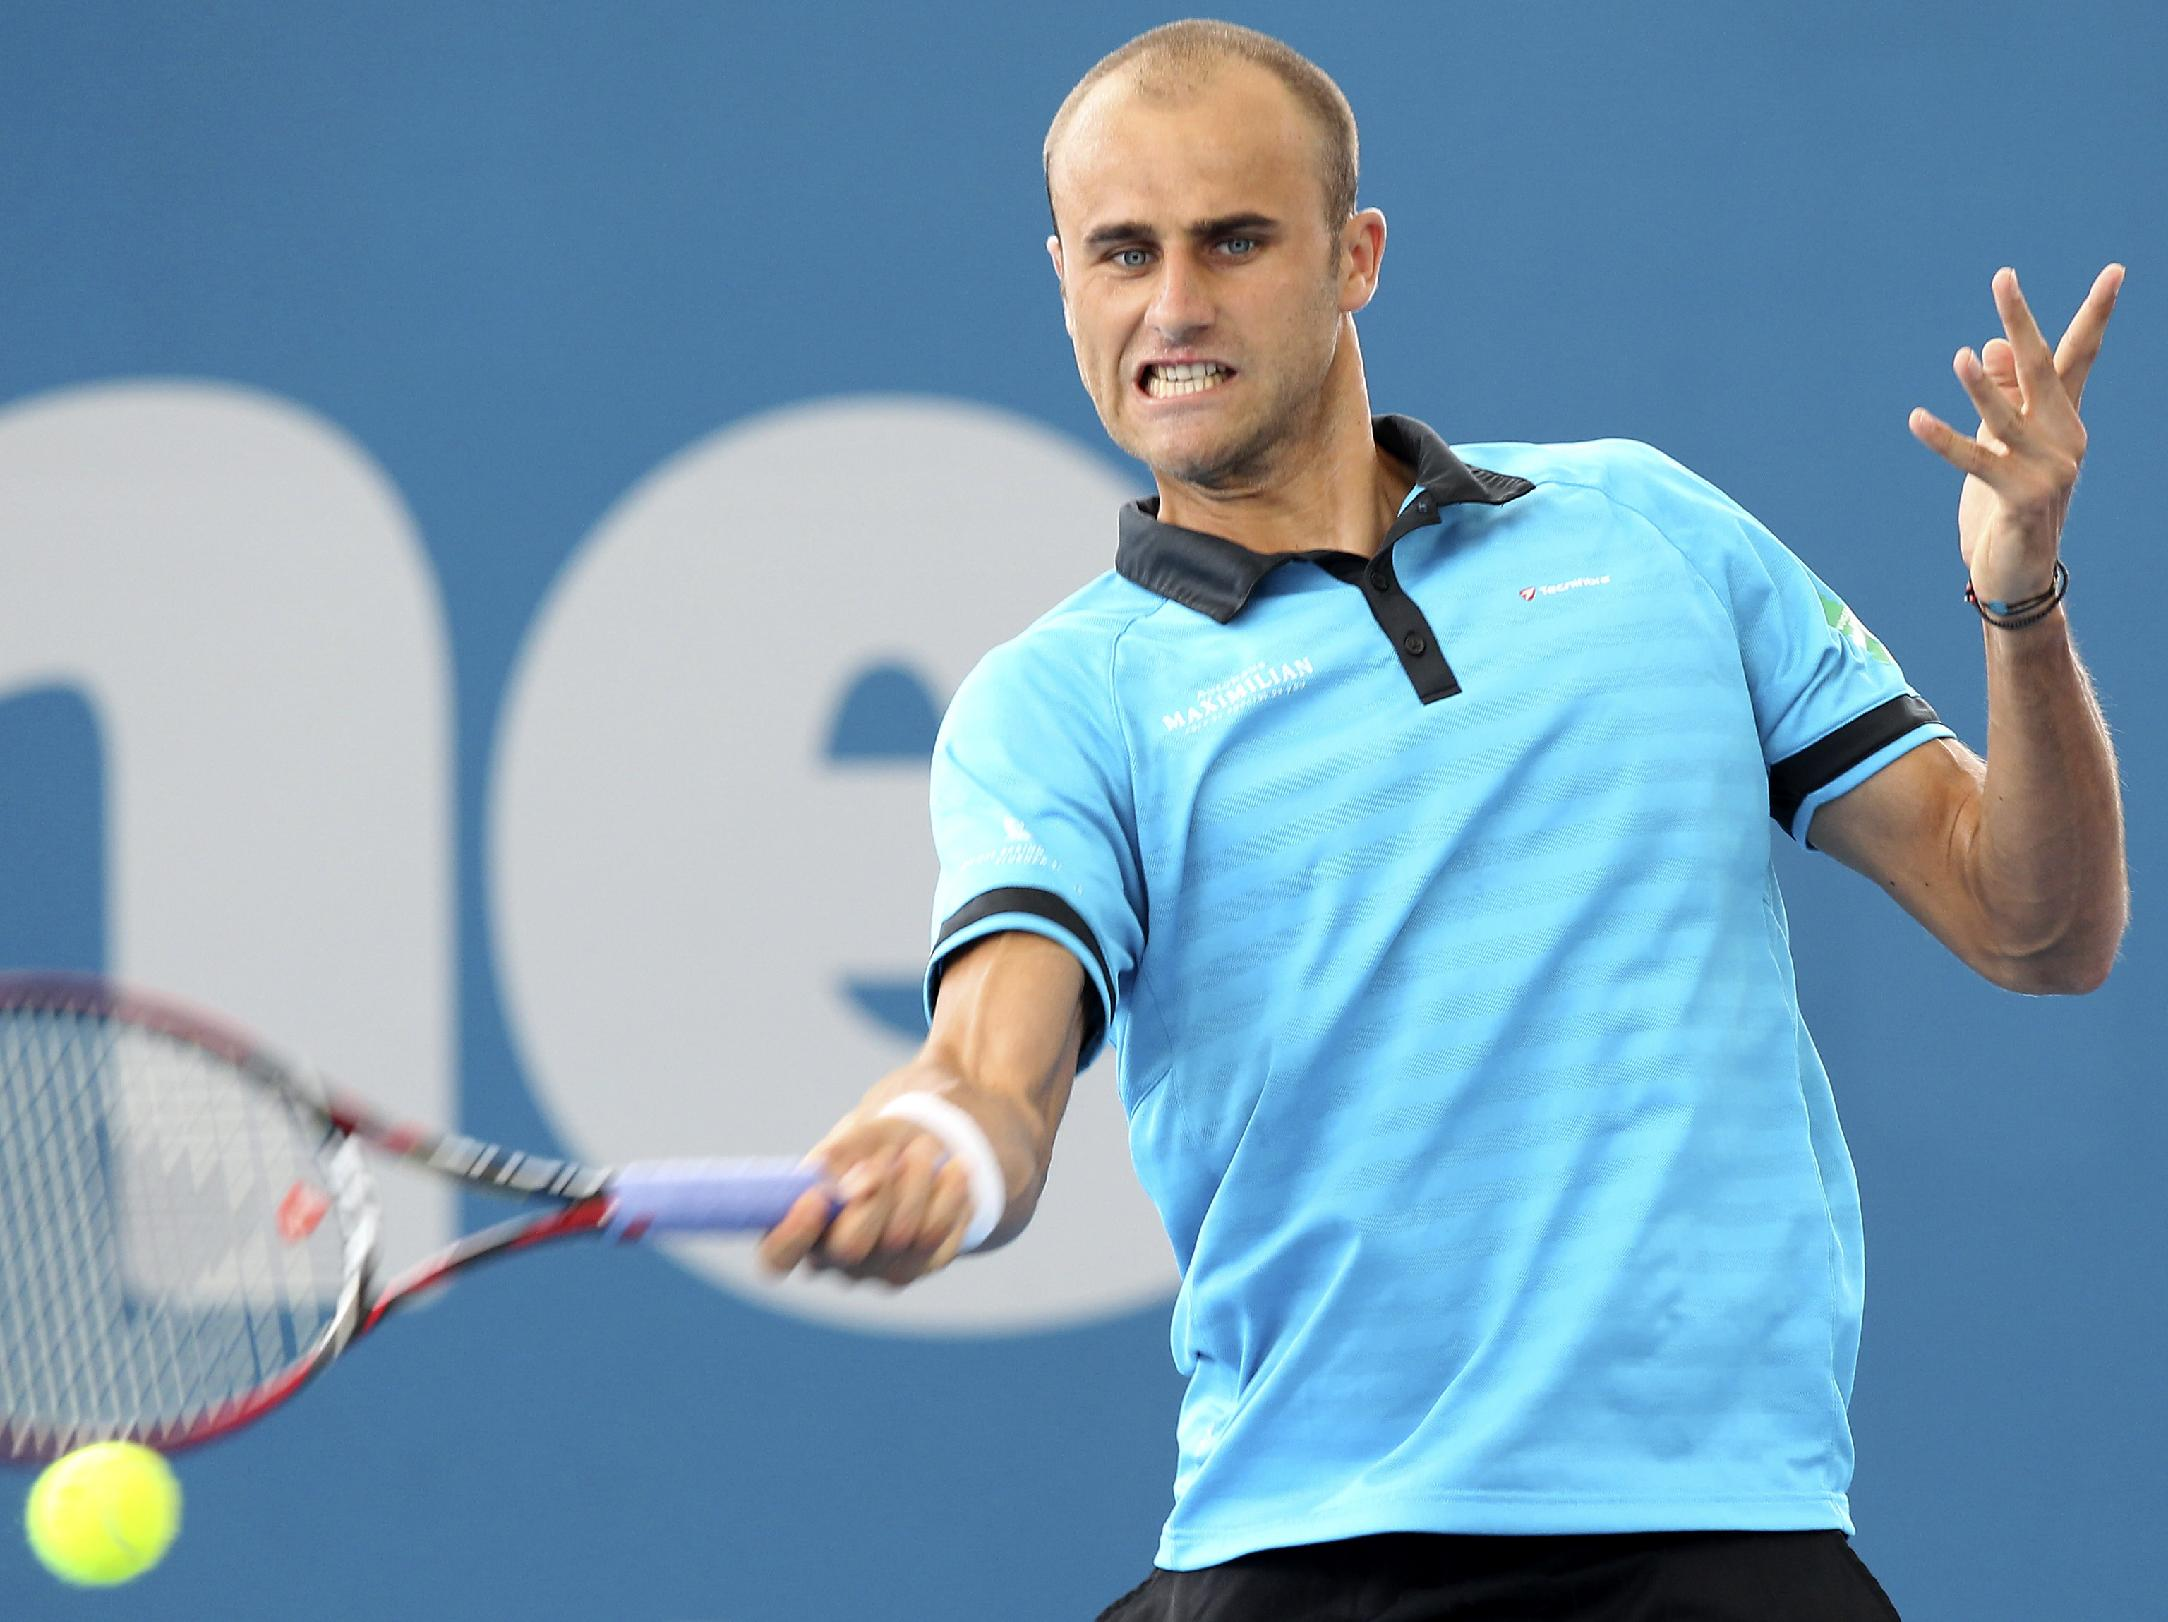 Marius Copil of Romania plays a shot in his match against Gilles Simon of France during the Brisbane International tennis tournament in Brisbane, Australia, Thursday, Jan. 2, 2014